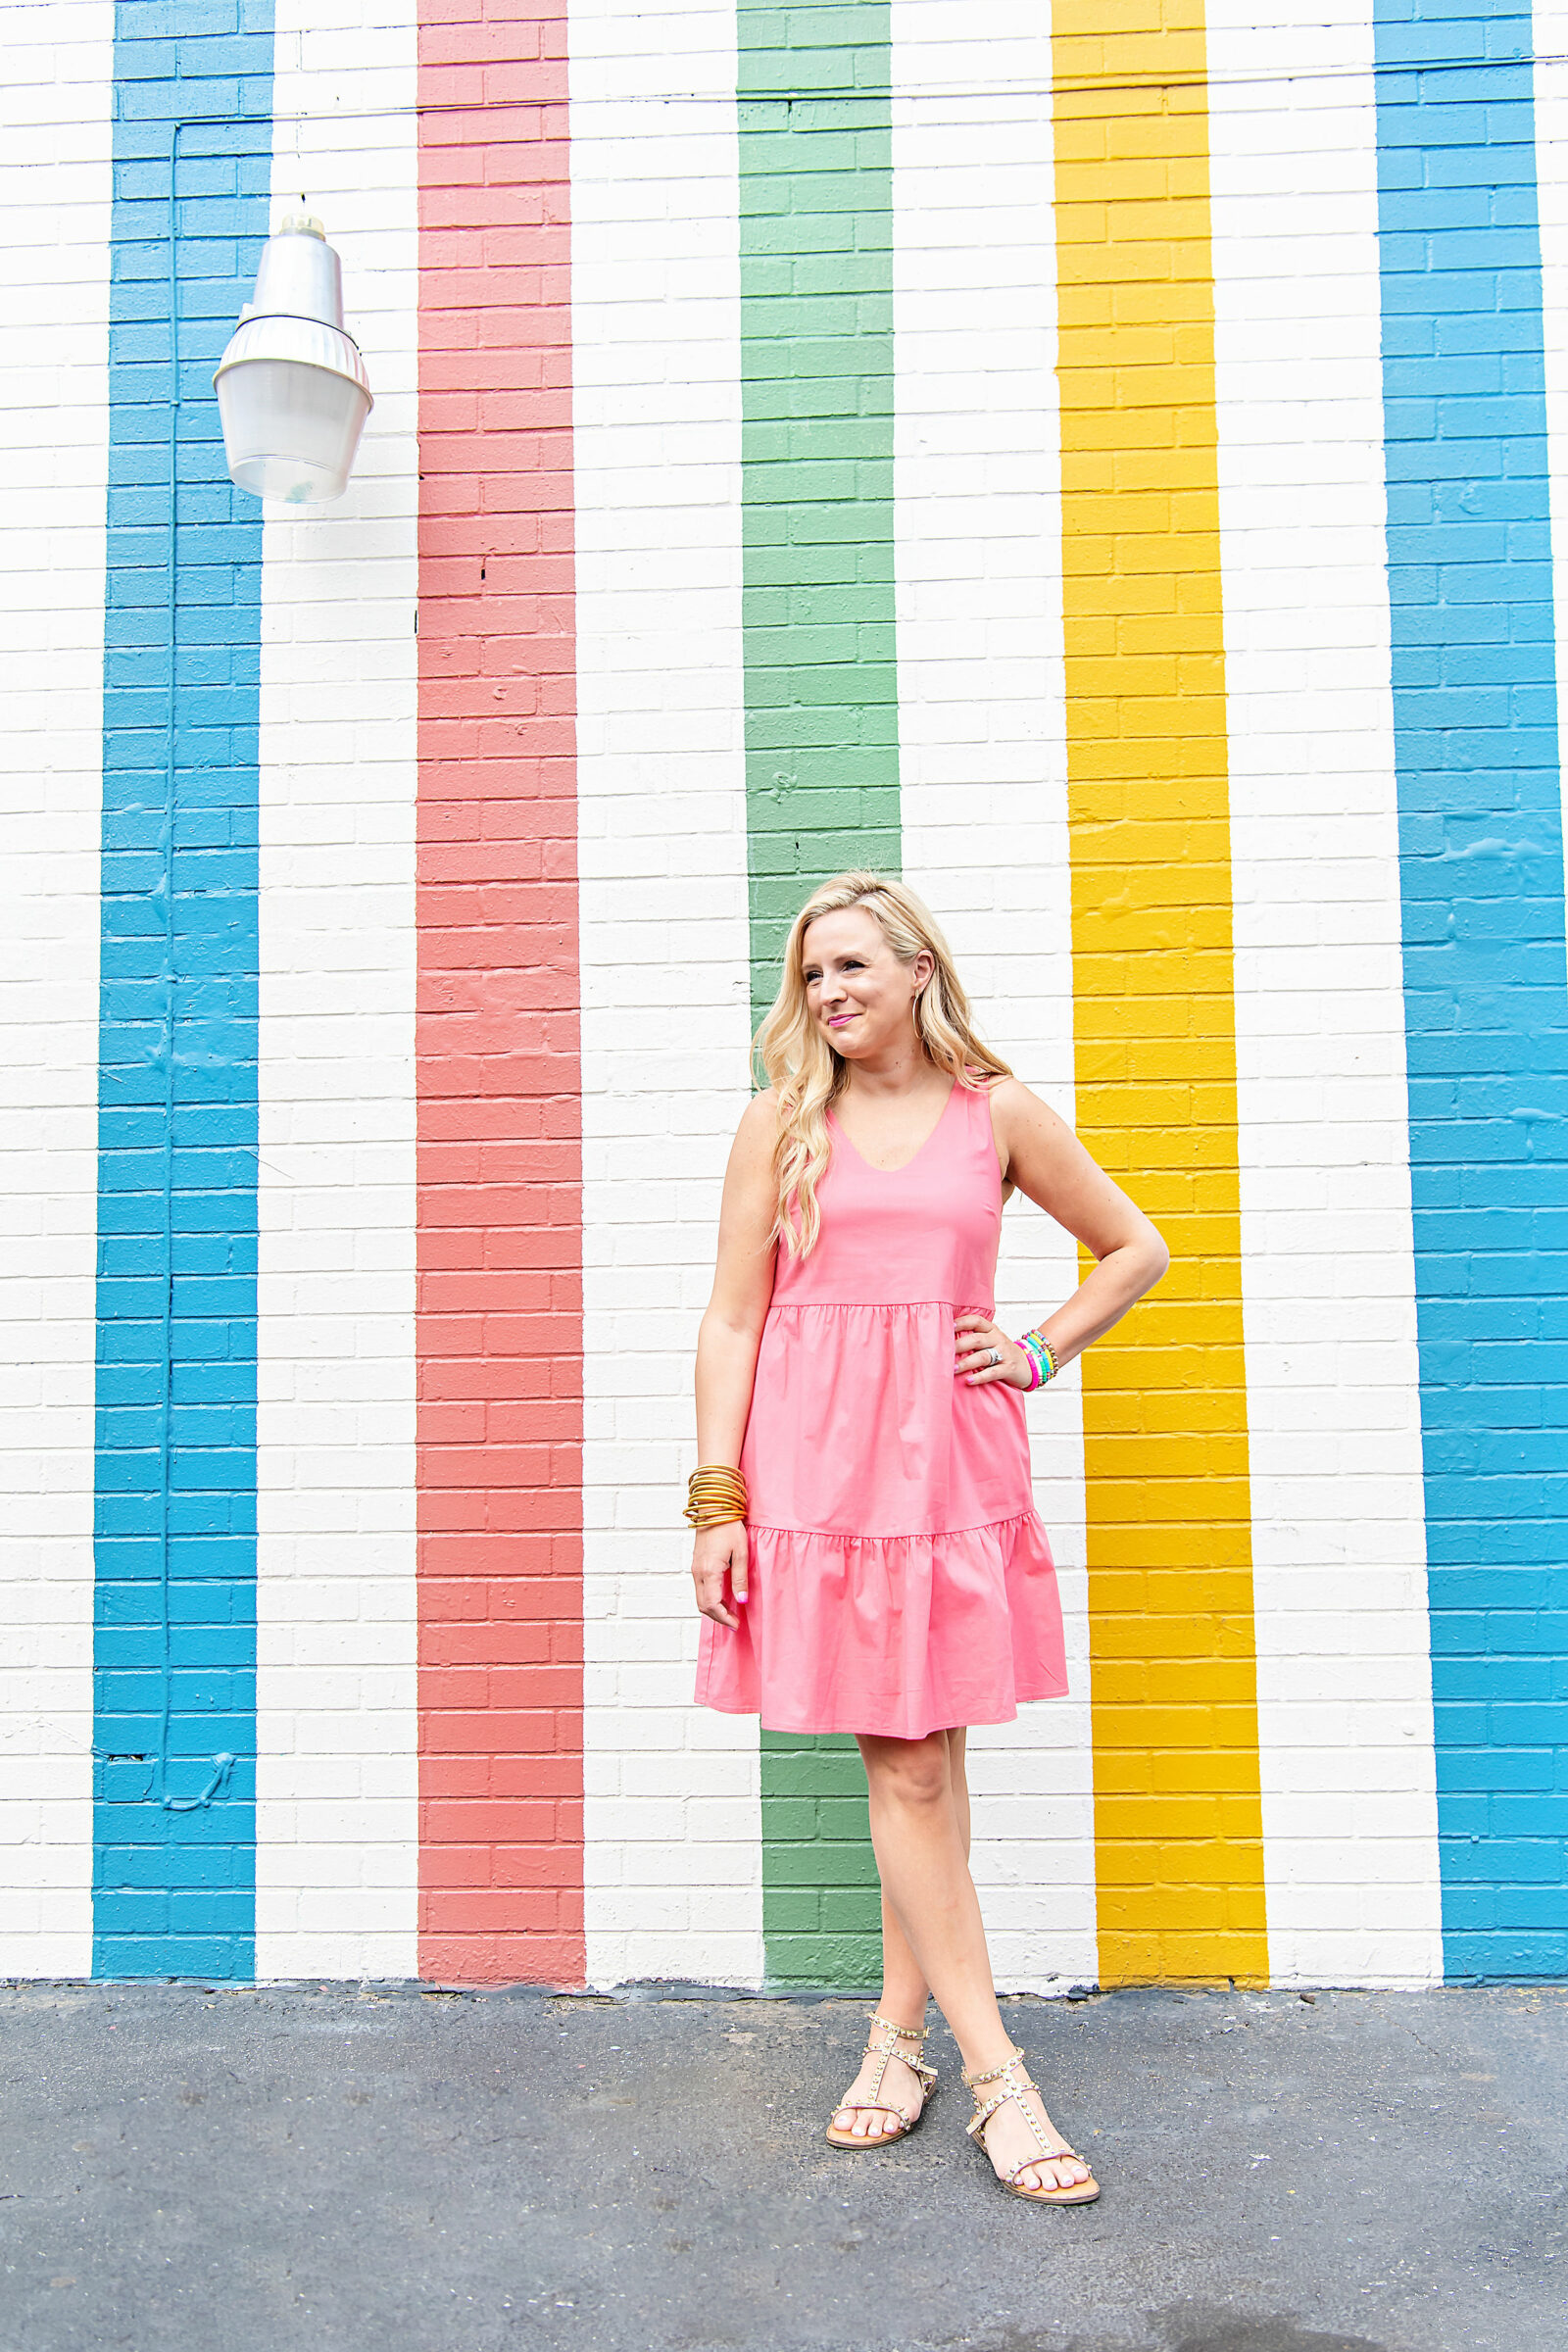 pink graduation dress |. pink graduation dress | Graduation Dress by popular Houston fashion blog, The House of Fancy: image of a woman standing in front of a multi color strip mural and wearing a Gibsonlook Ashley tiered poplin dress, studded gold strap sandals, gold bracelets and colorful stretch bracelets.